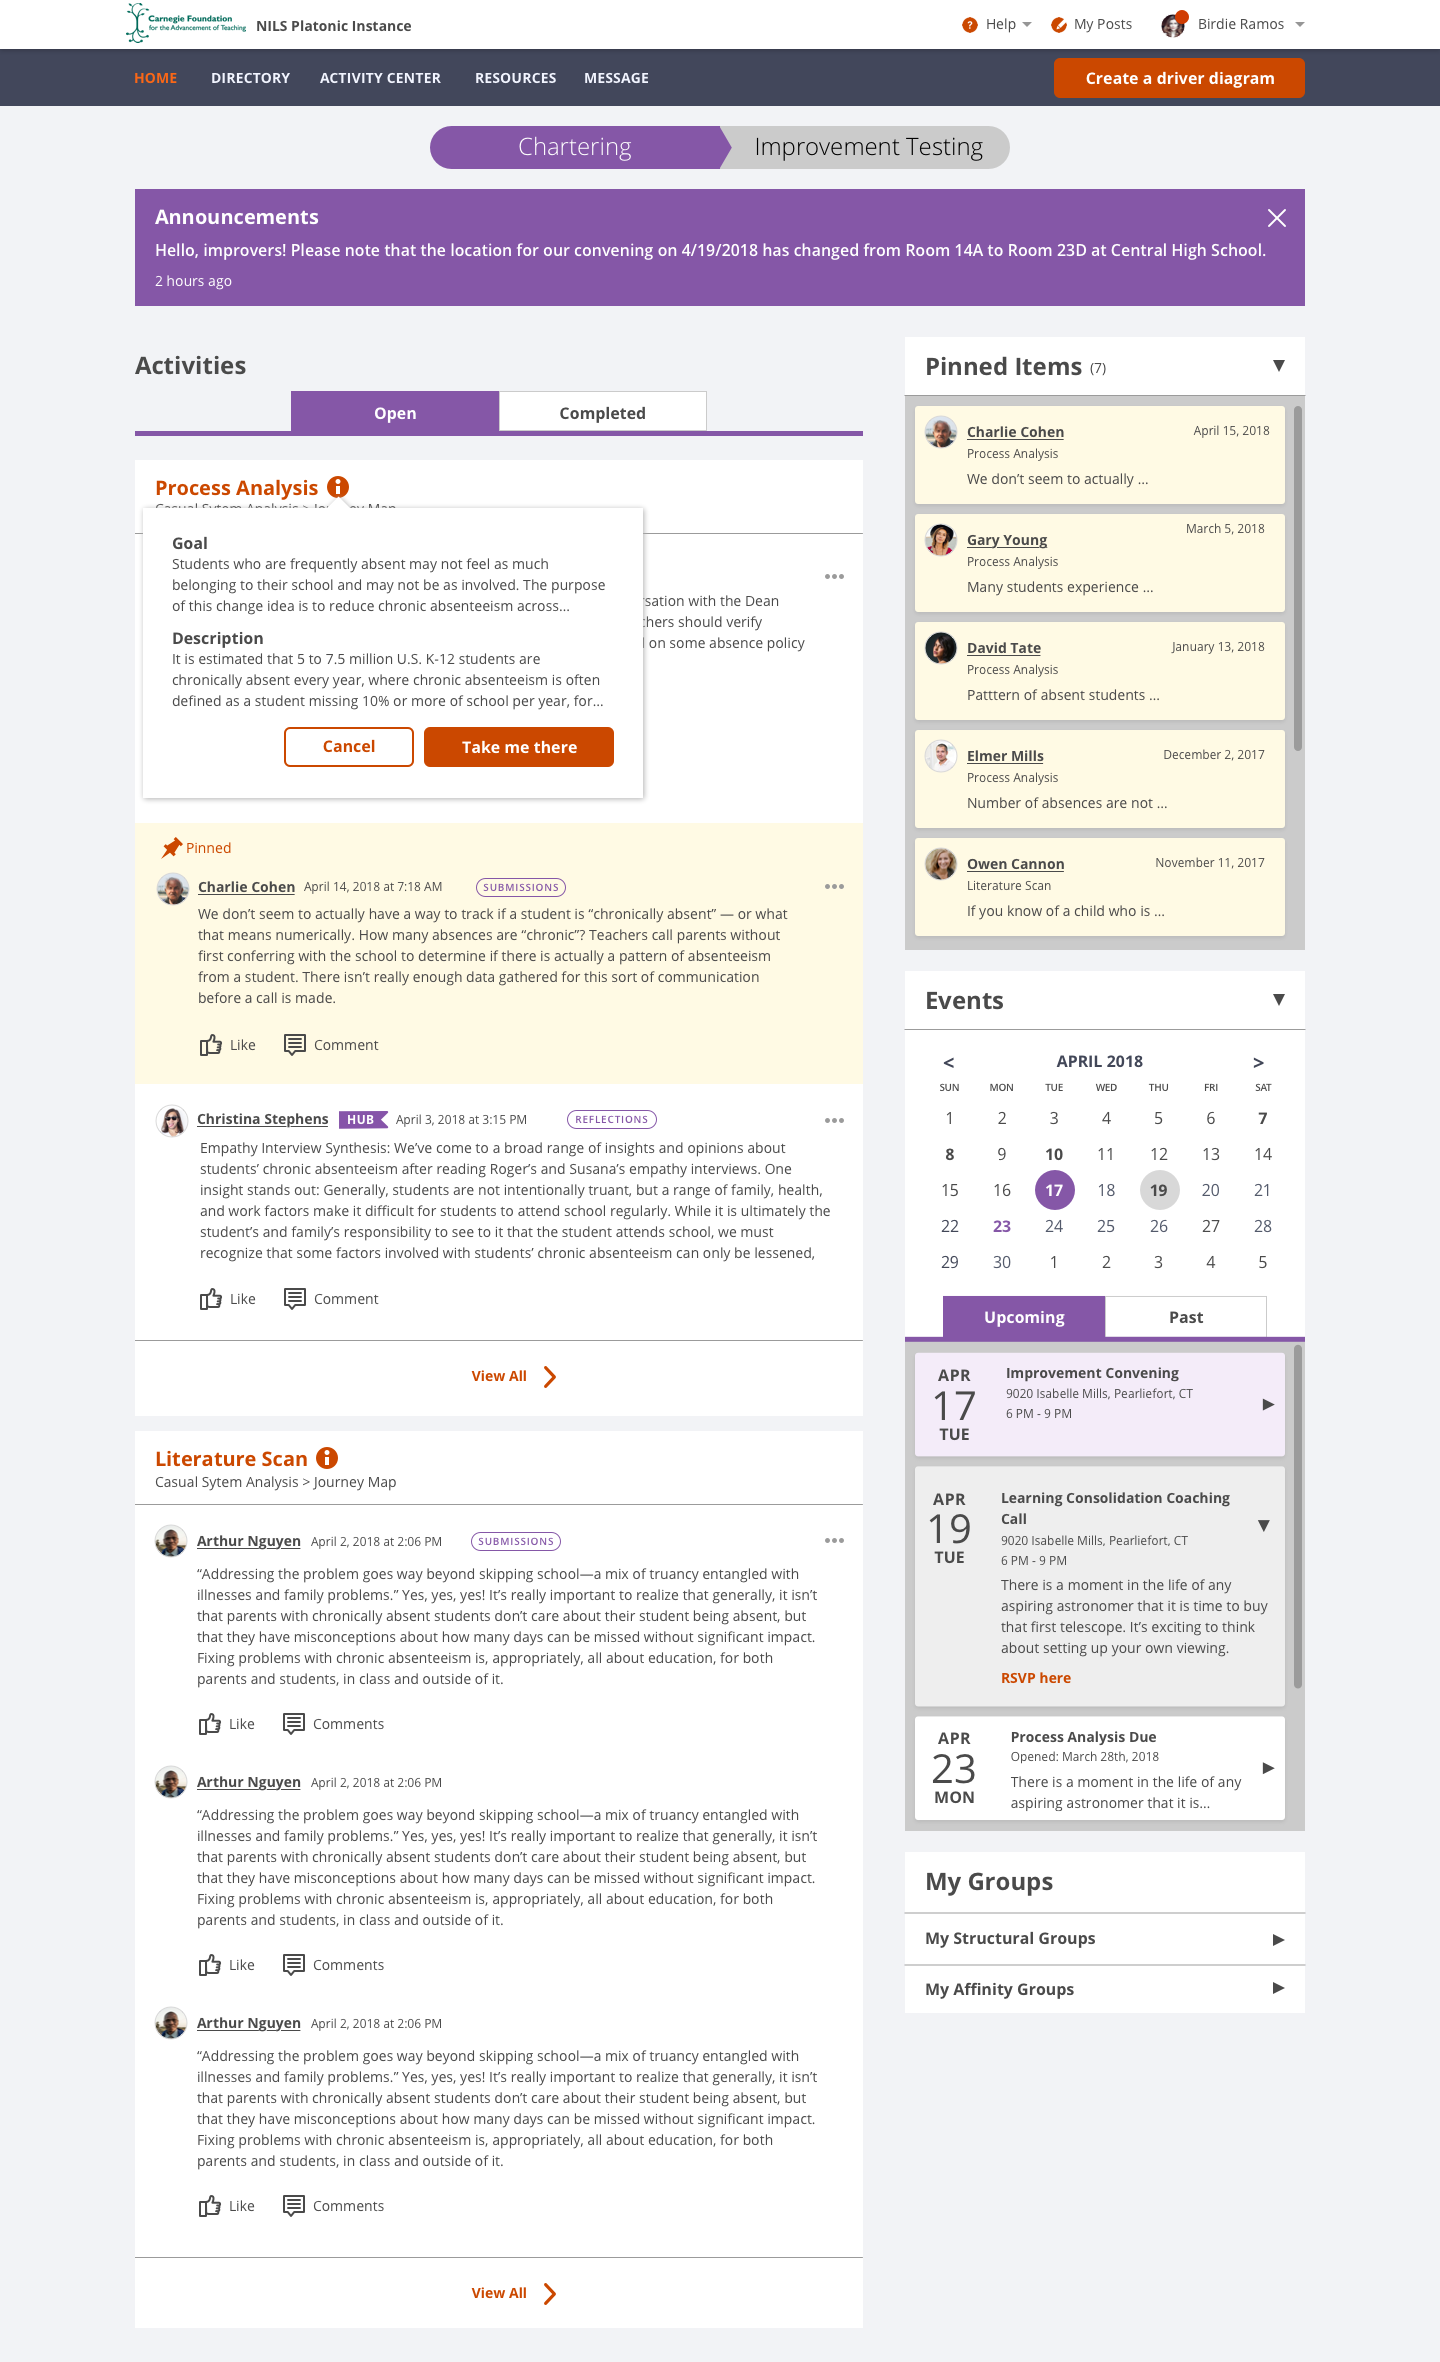 Chartering - 01 hover profile card.png